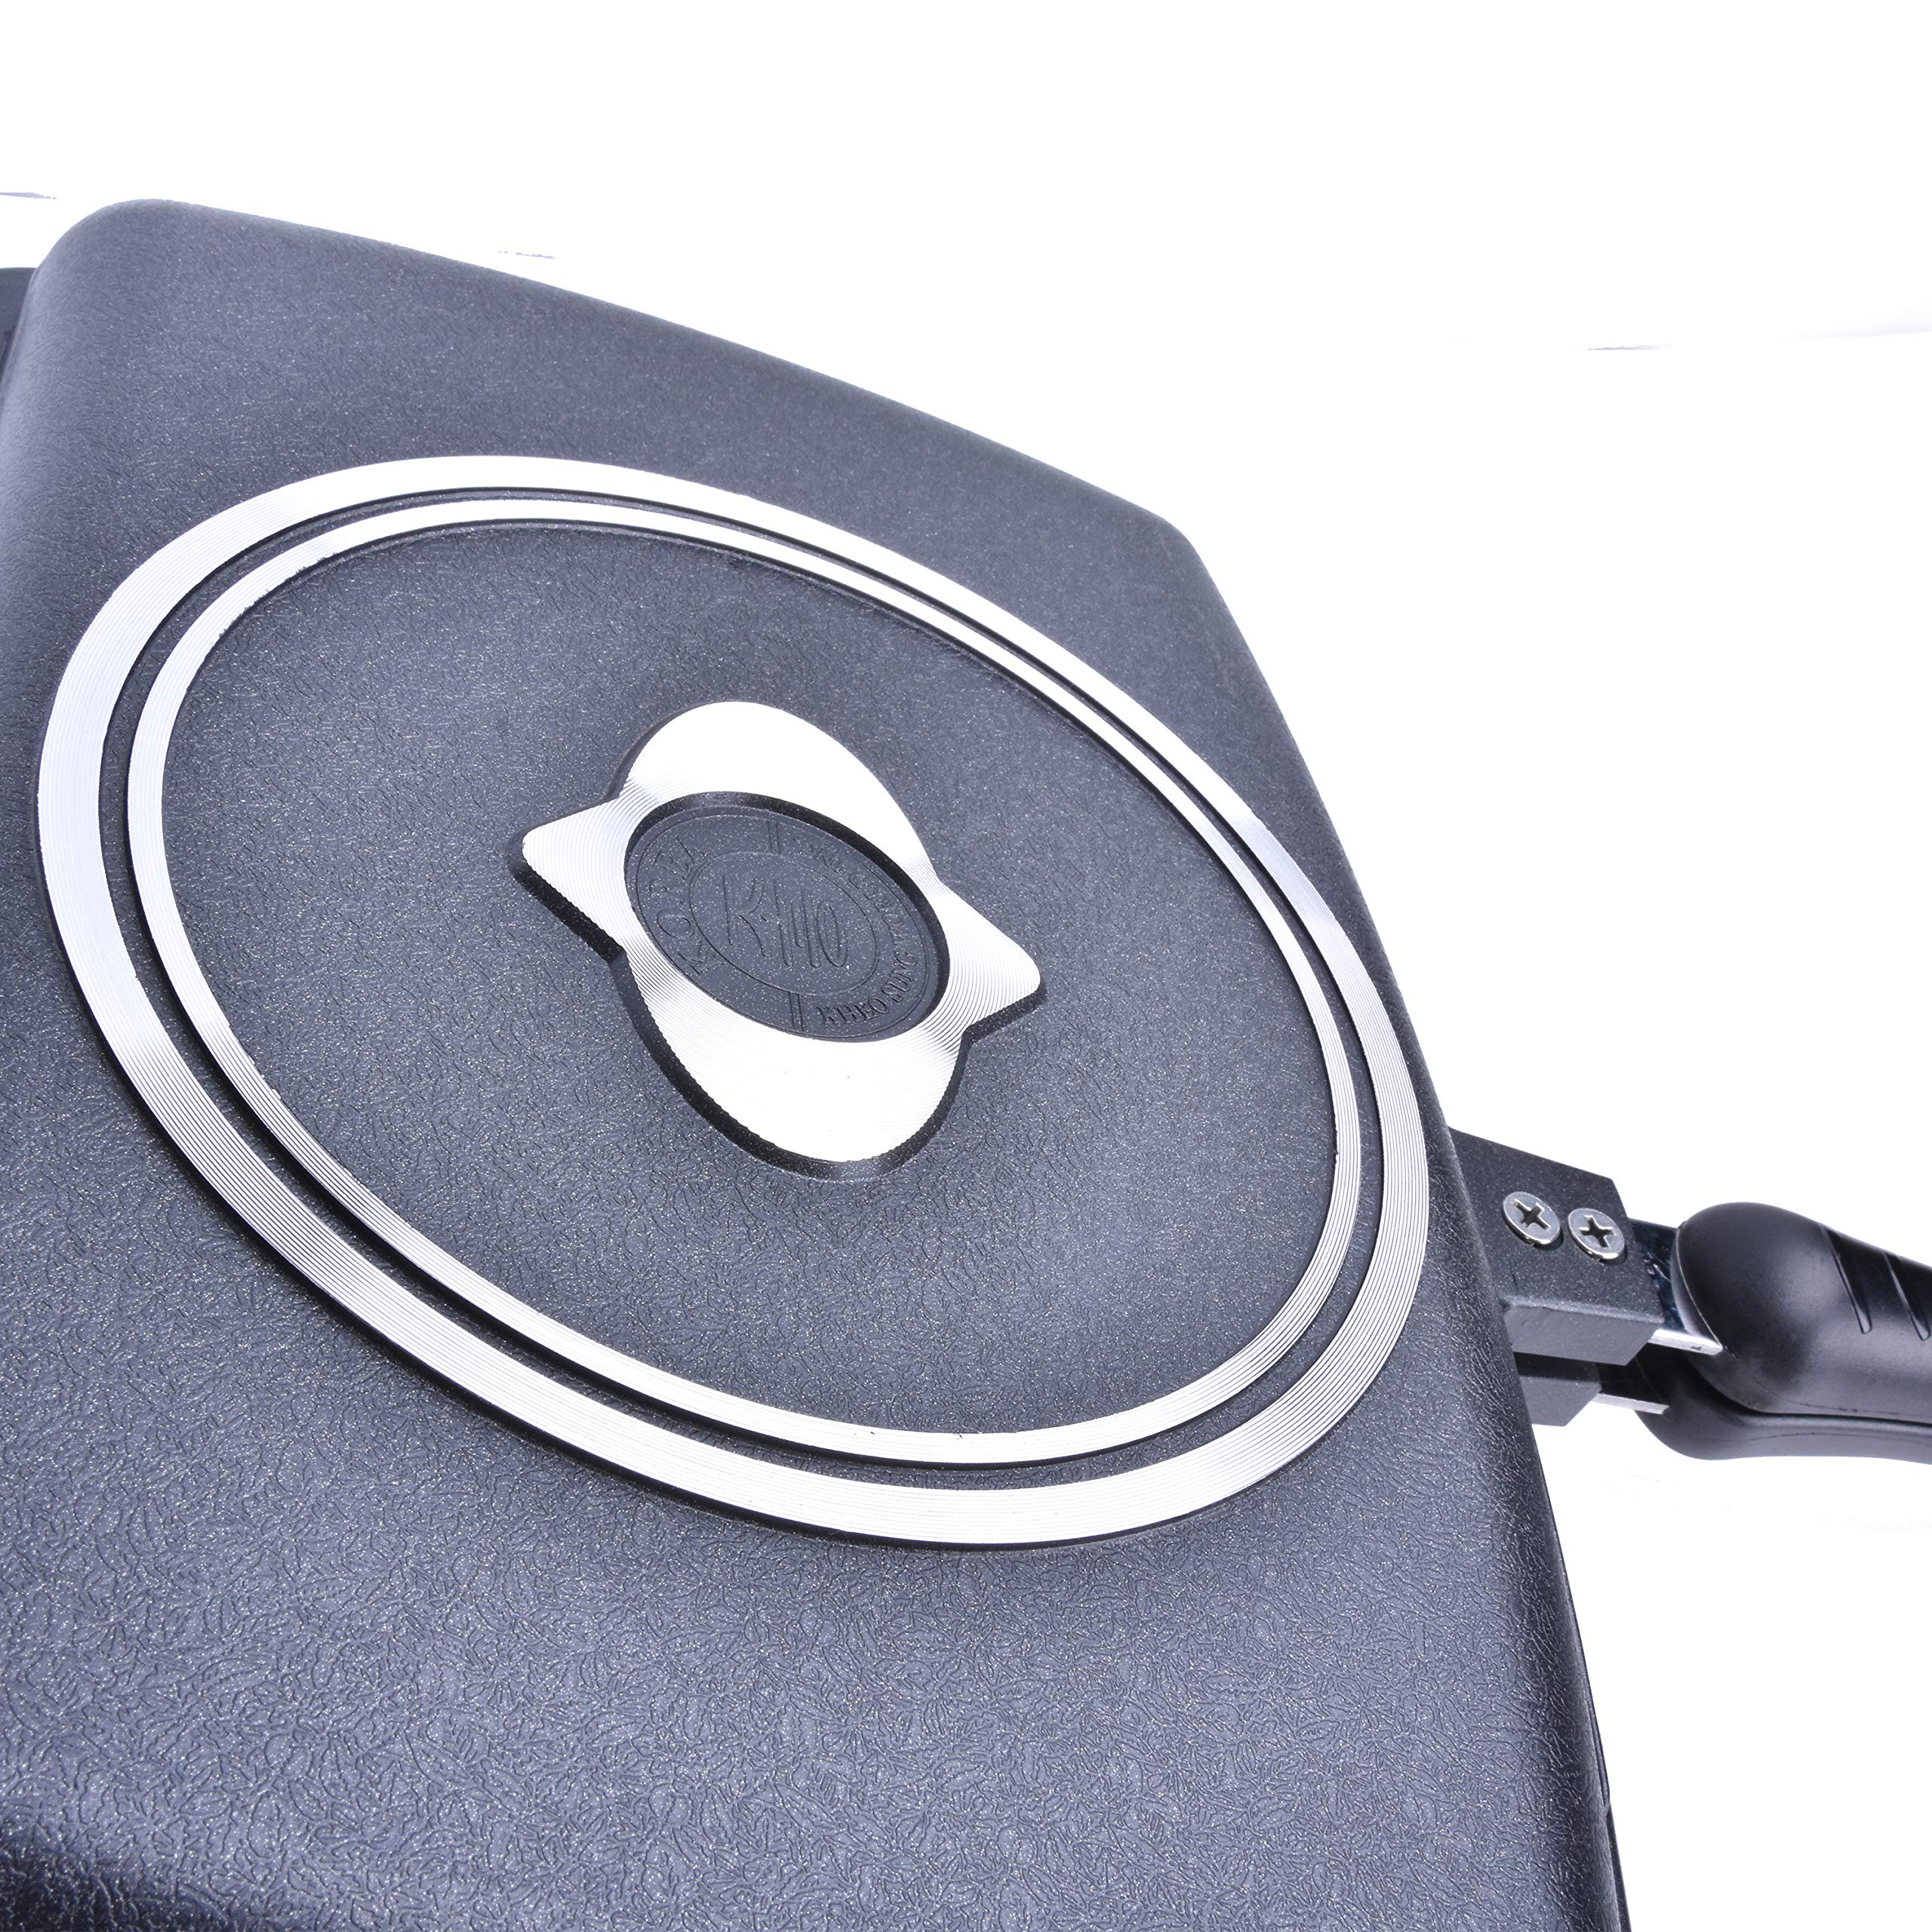 YONATA Double-sided Portable BBQ Pan Set,Separate Barbecue Plate For Indoor and Outdoor Cooked Chicken,Fish,Egg by YONATA (Image #7)